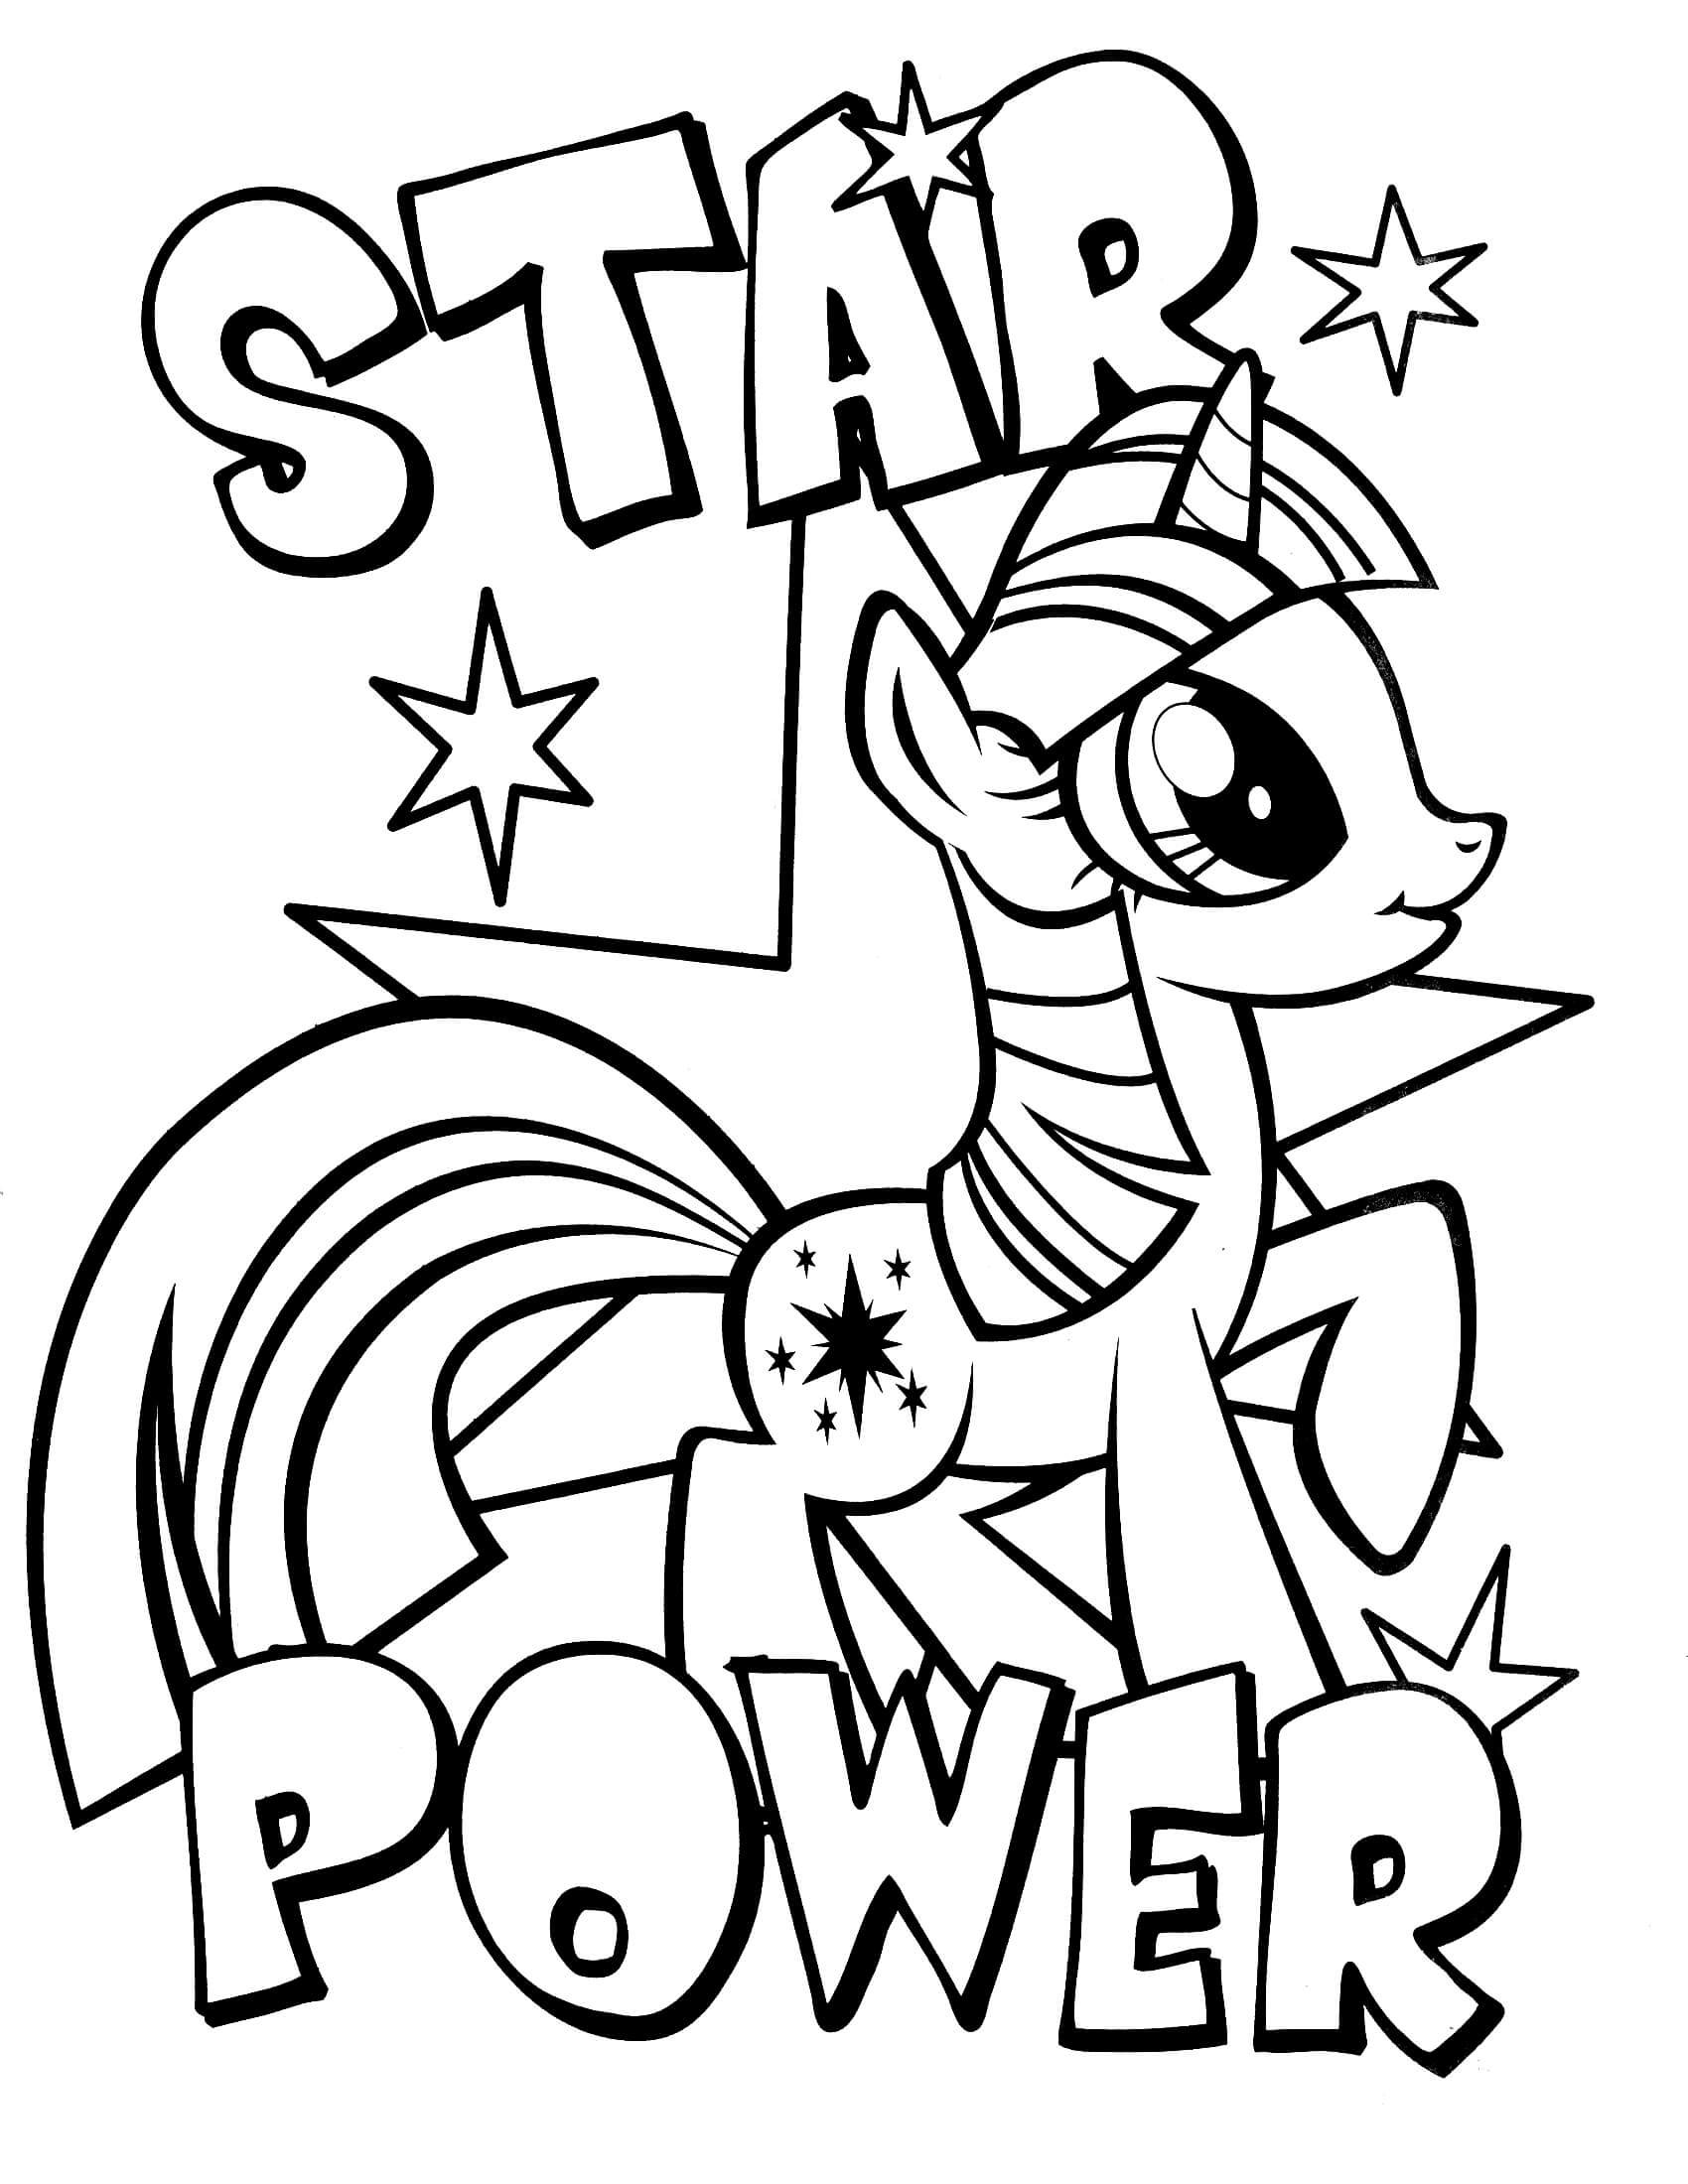 Pony Coloring Pages at GetDrawings.com | Free for personal use Pony ...